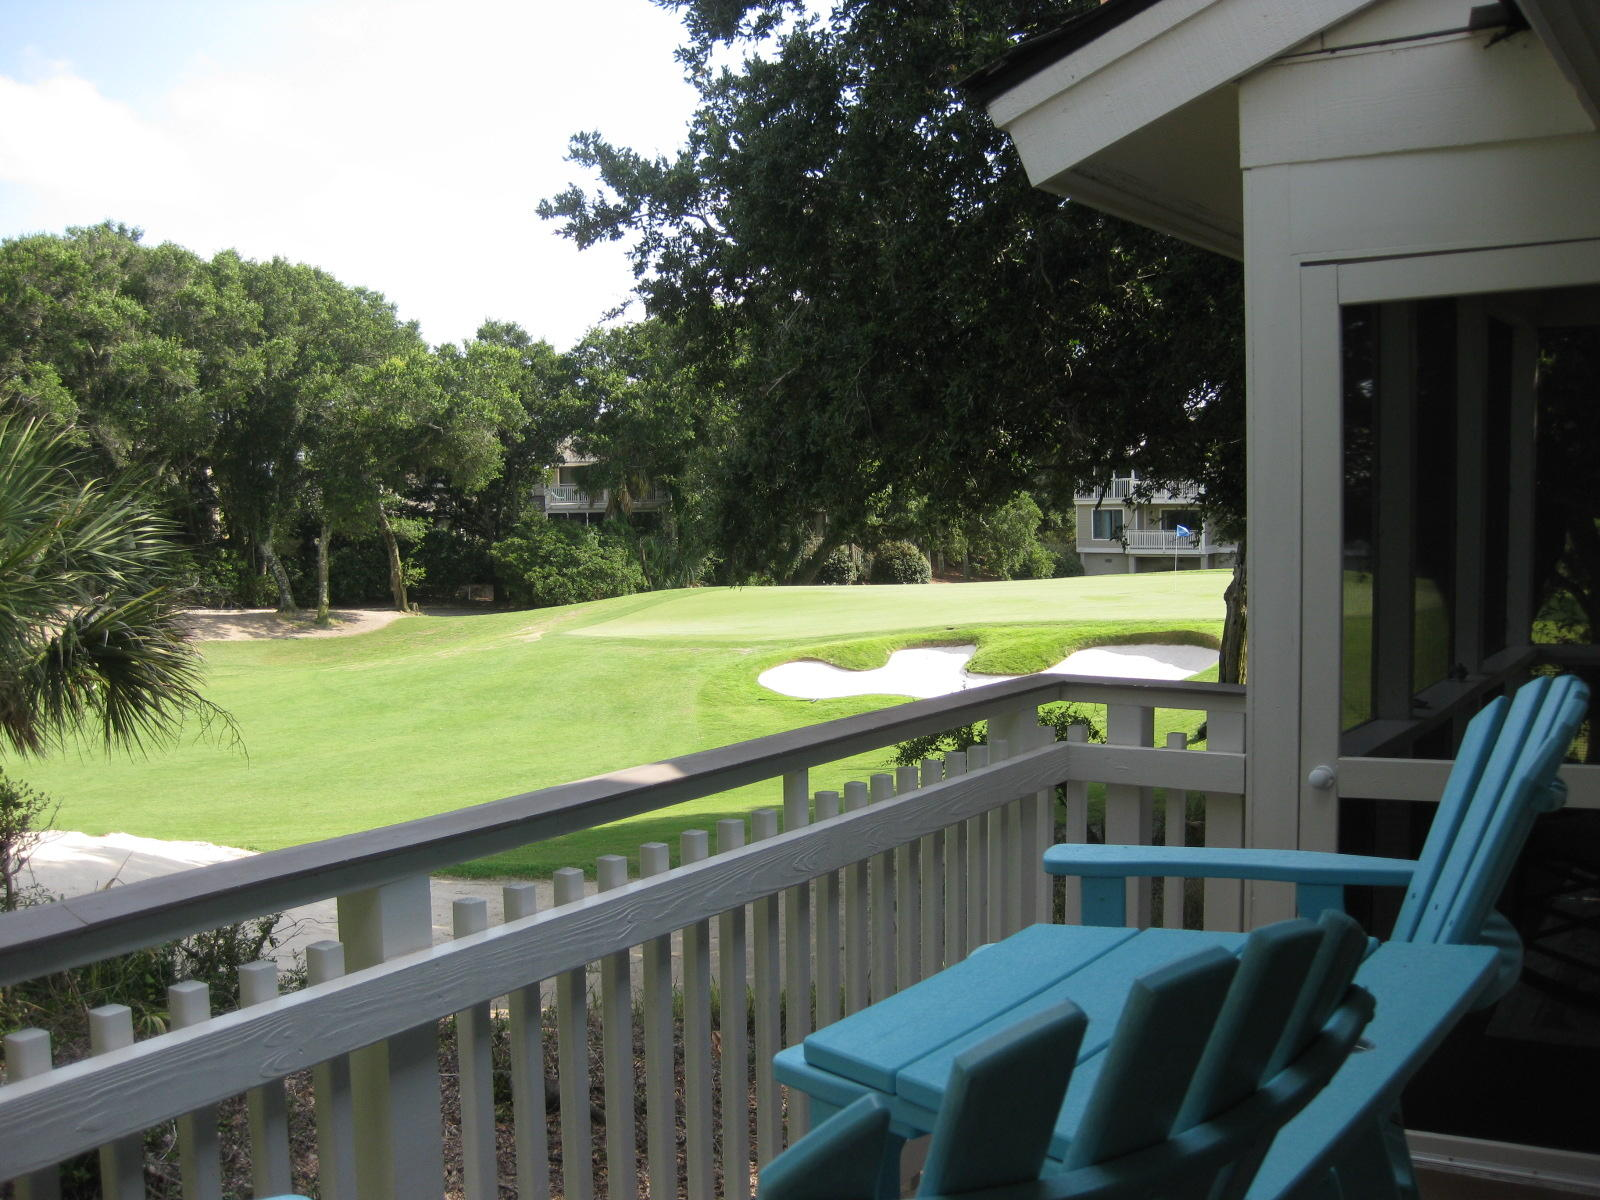 Fairway Villas Homes For Sale - 25 Fairway Dunes (1/6 Share), Isle of Palms, SC - 3